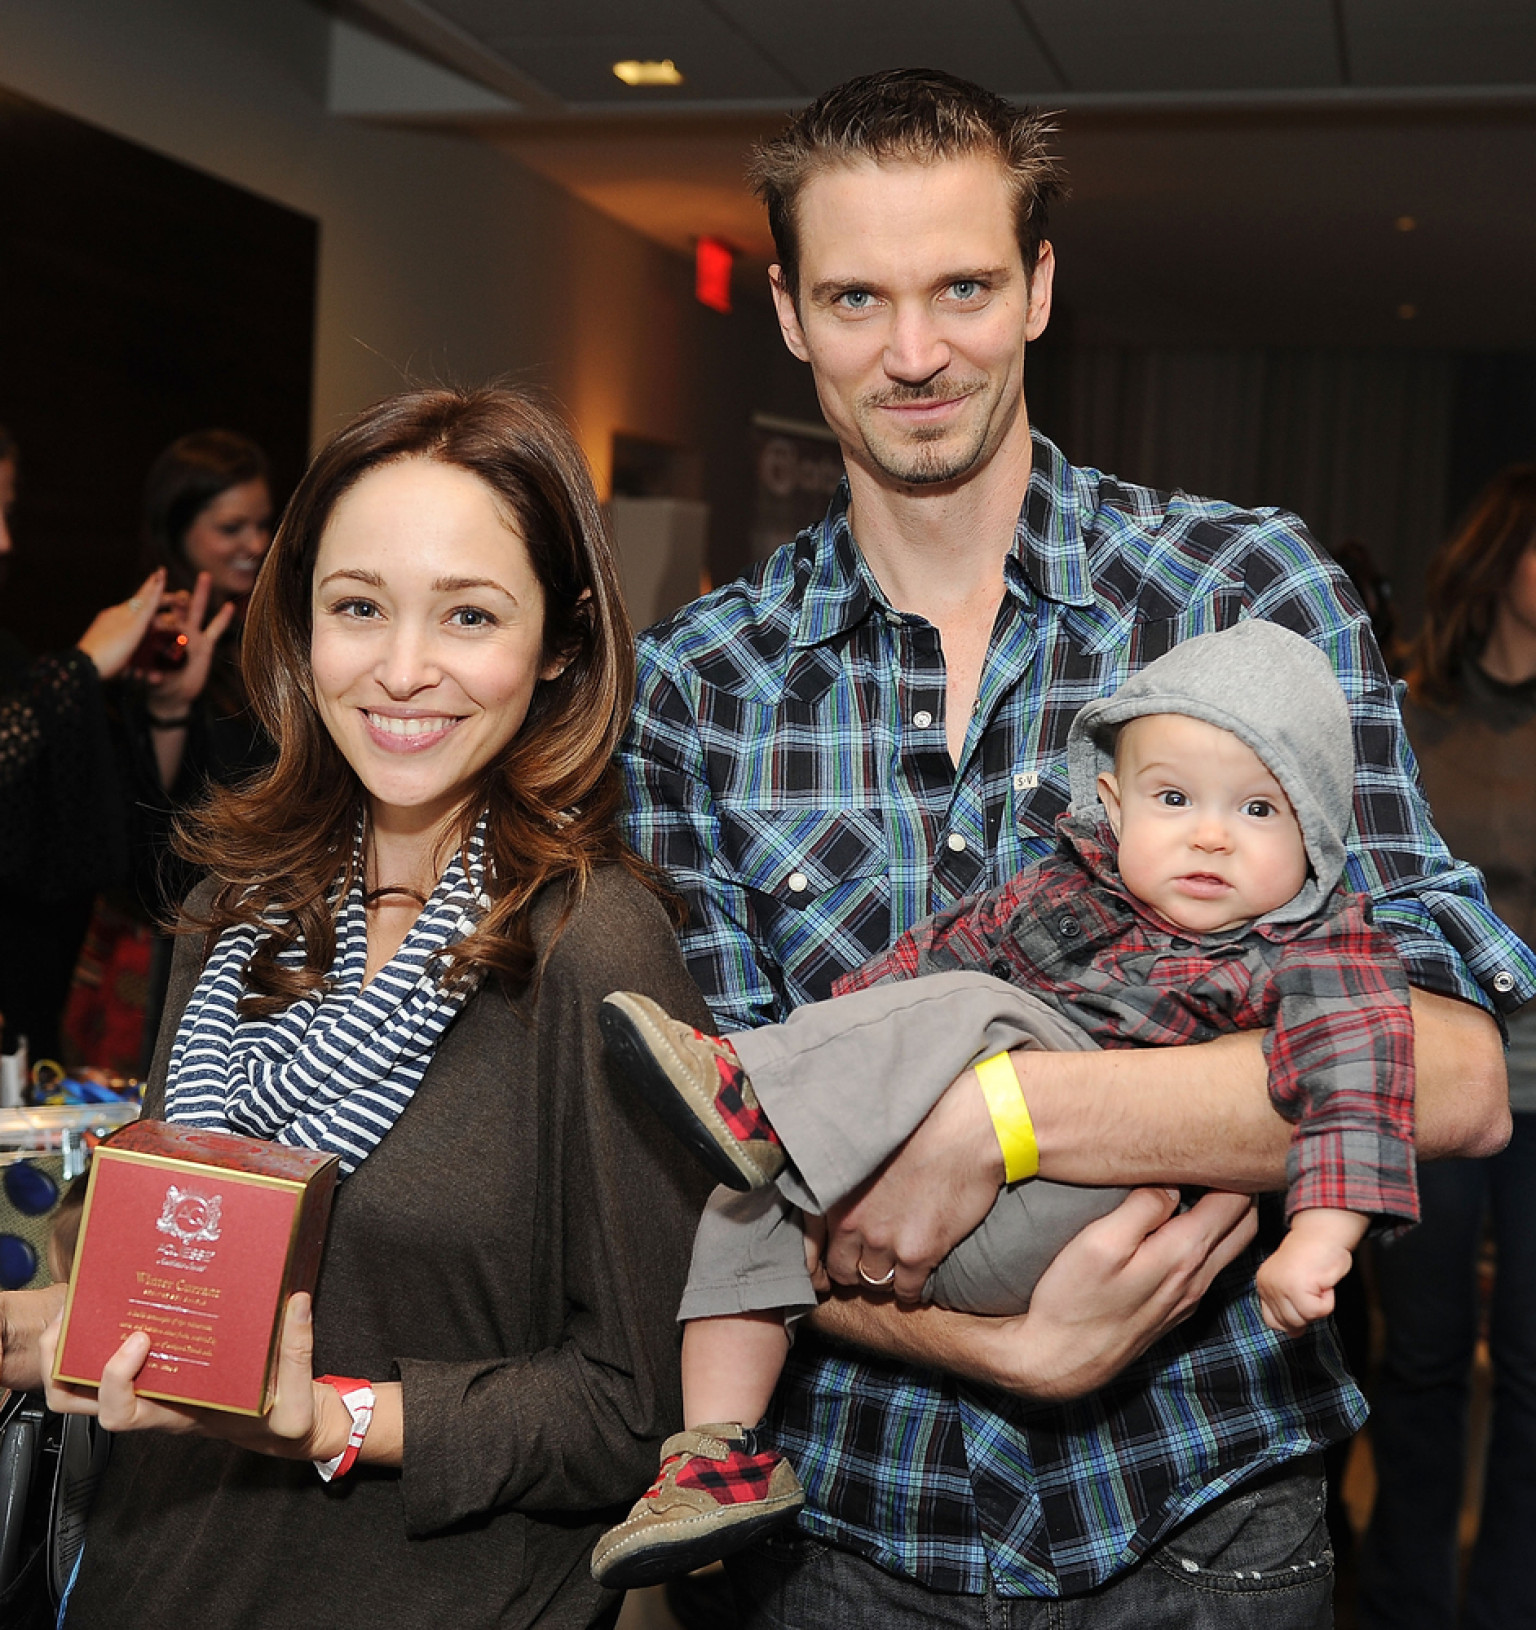 AUTUMN-REESER-JESSE-WARREN-facebook jpgAutumn Reeser Husband